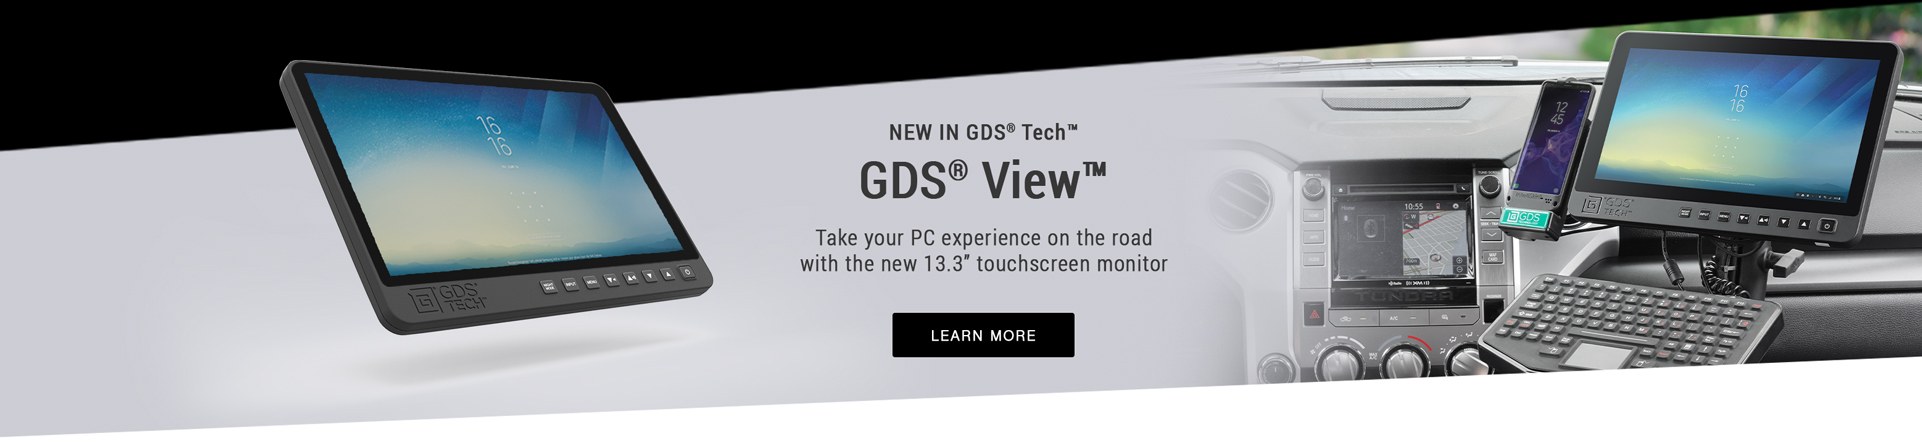 New in GDS® Tech™: GDS® View™